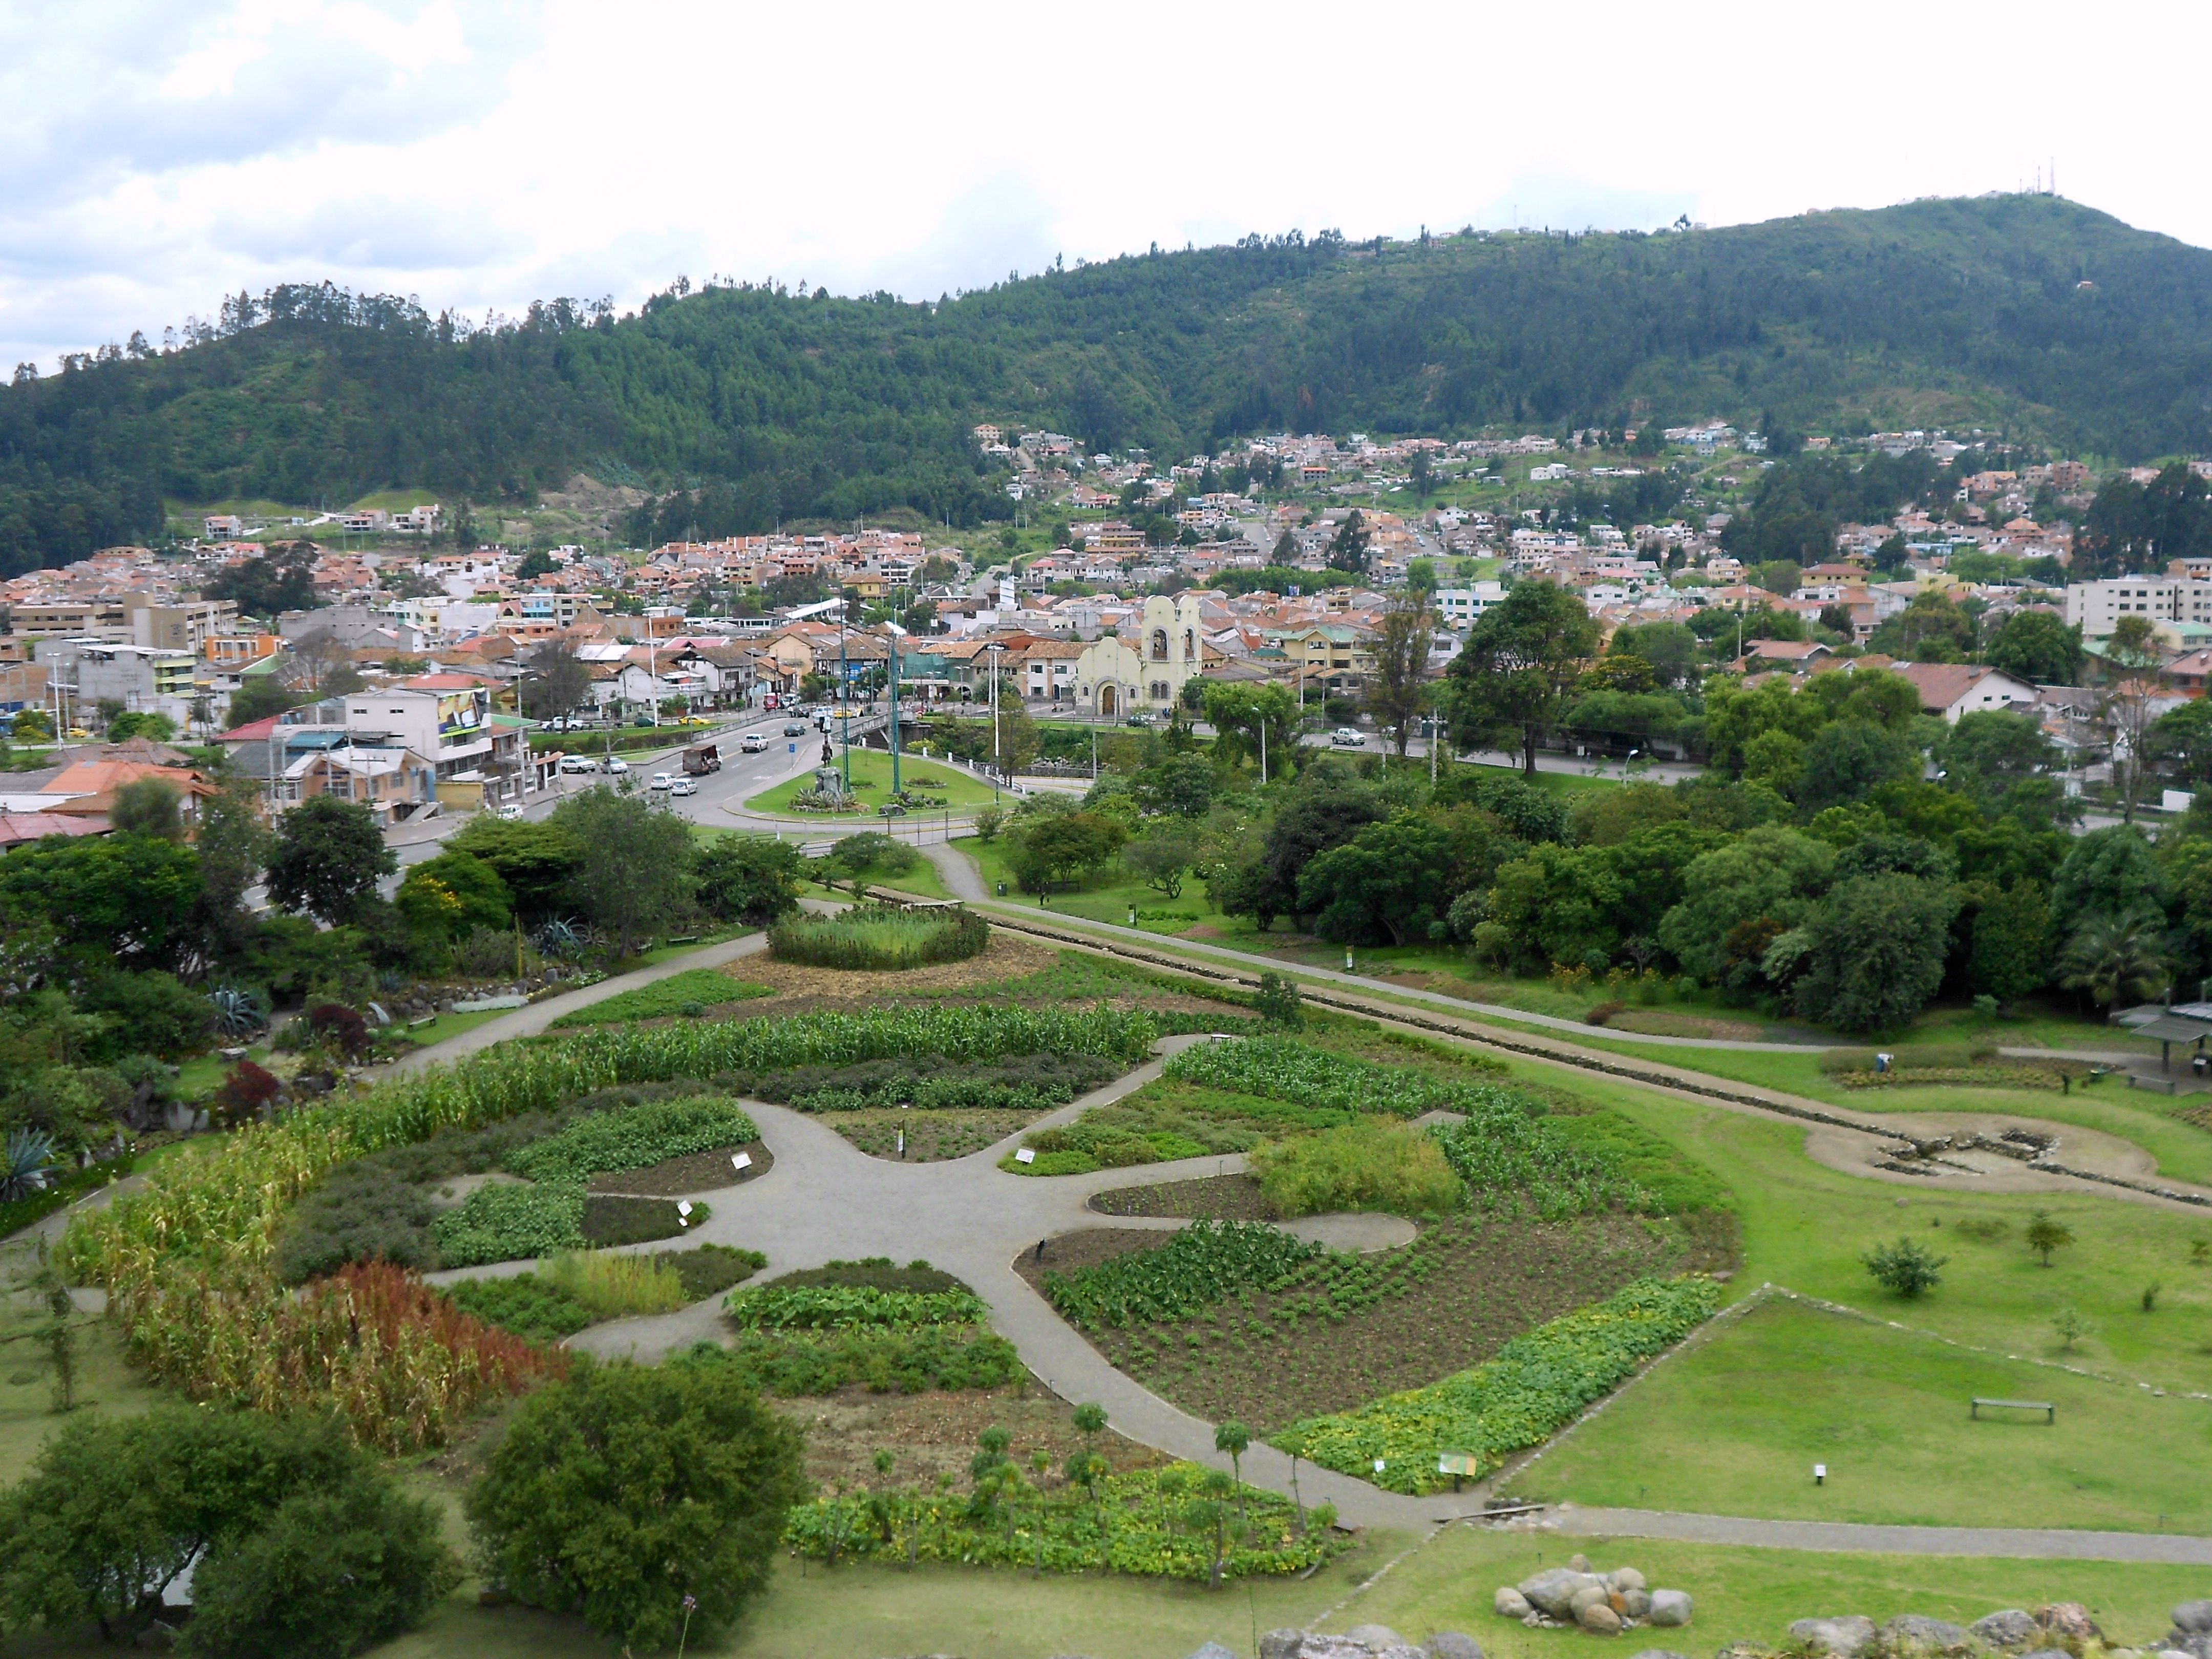 Cuenca from atop the Inca ruins that overlook the valley.